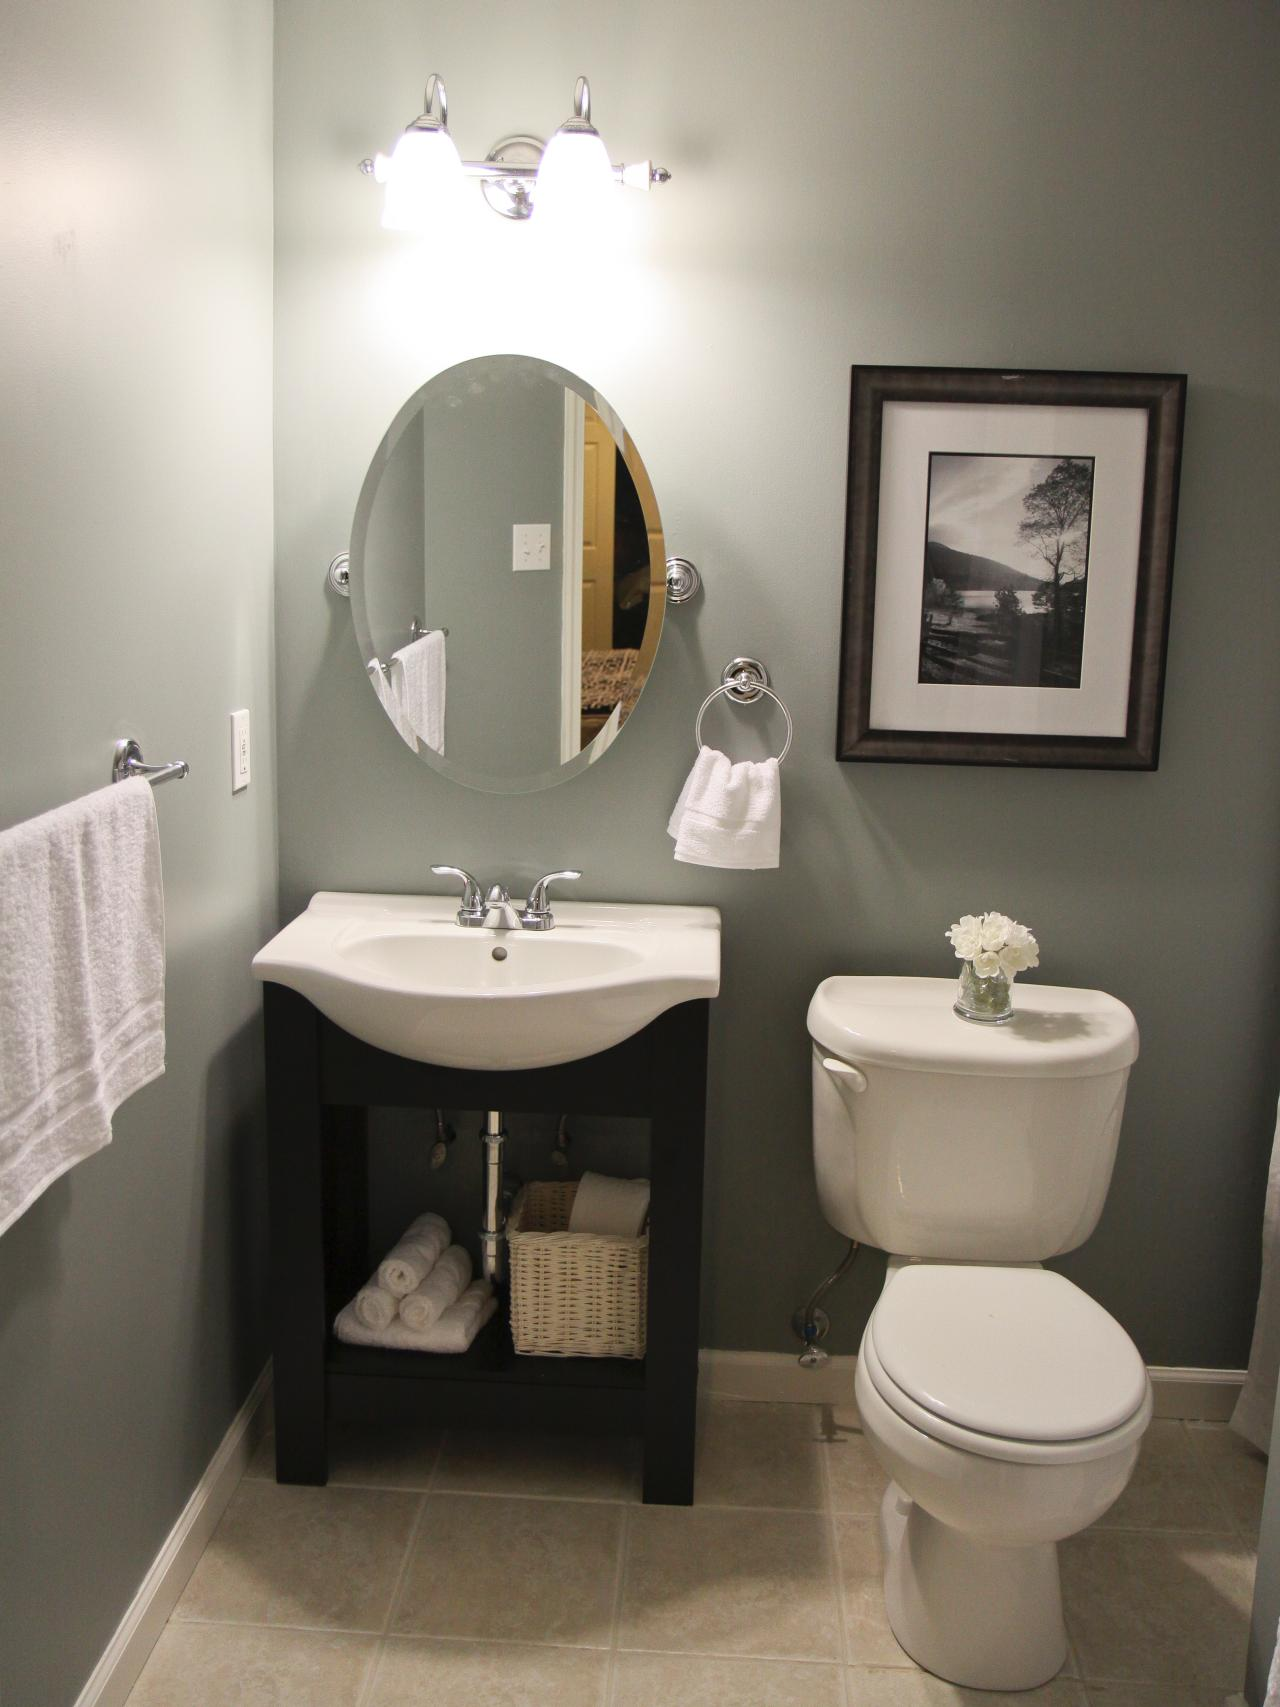 Beckoning Interior Small Bathroom With Simple Vanity Style Beside Toilet